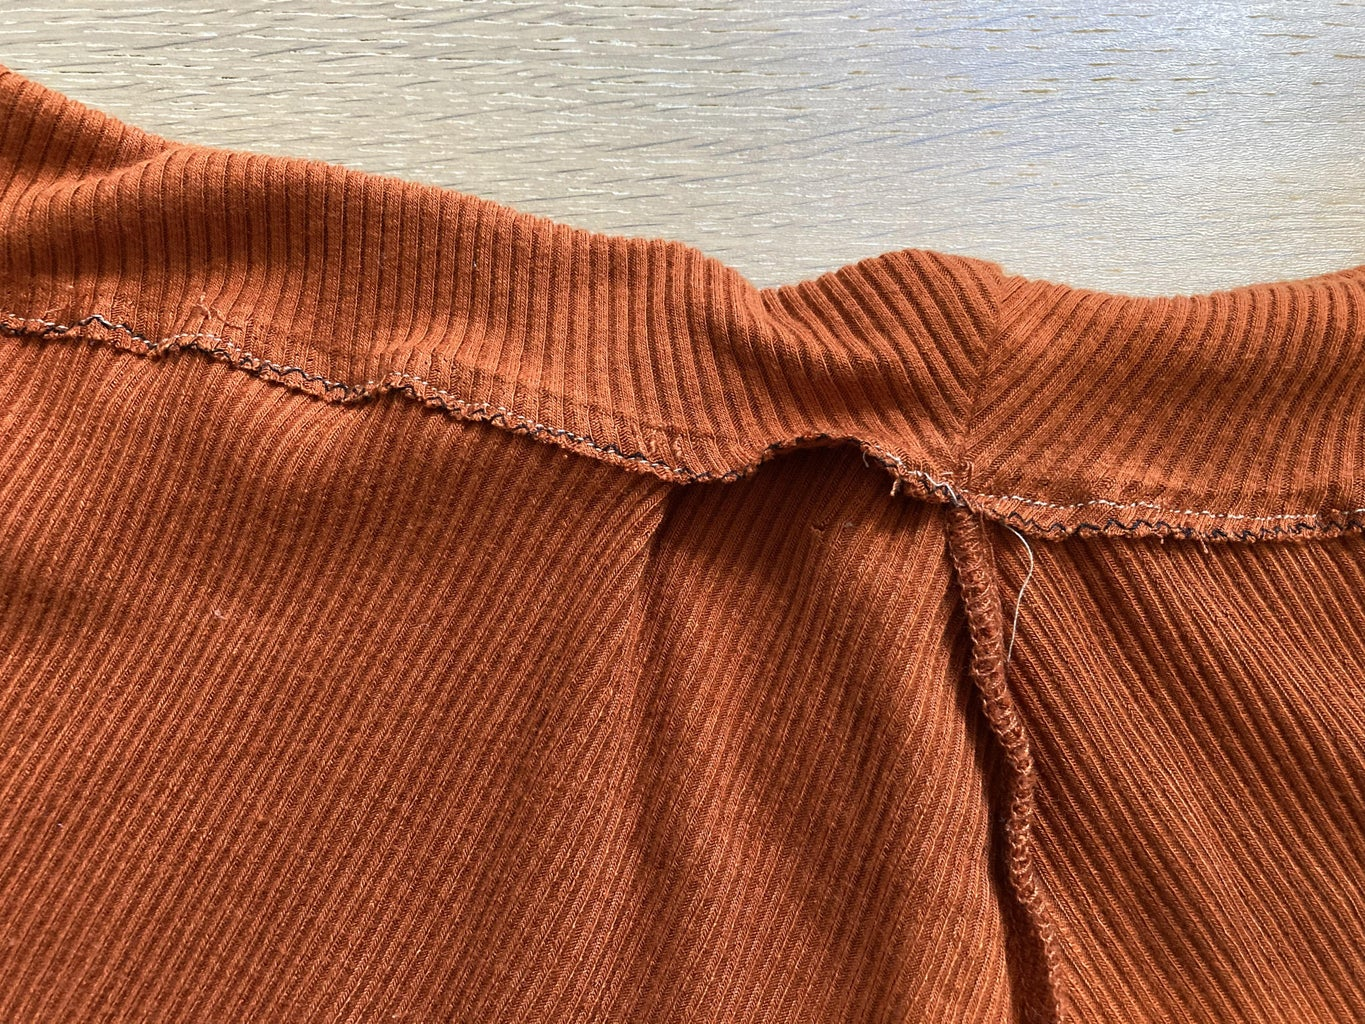 Sewing the Waist Band